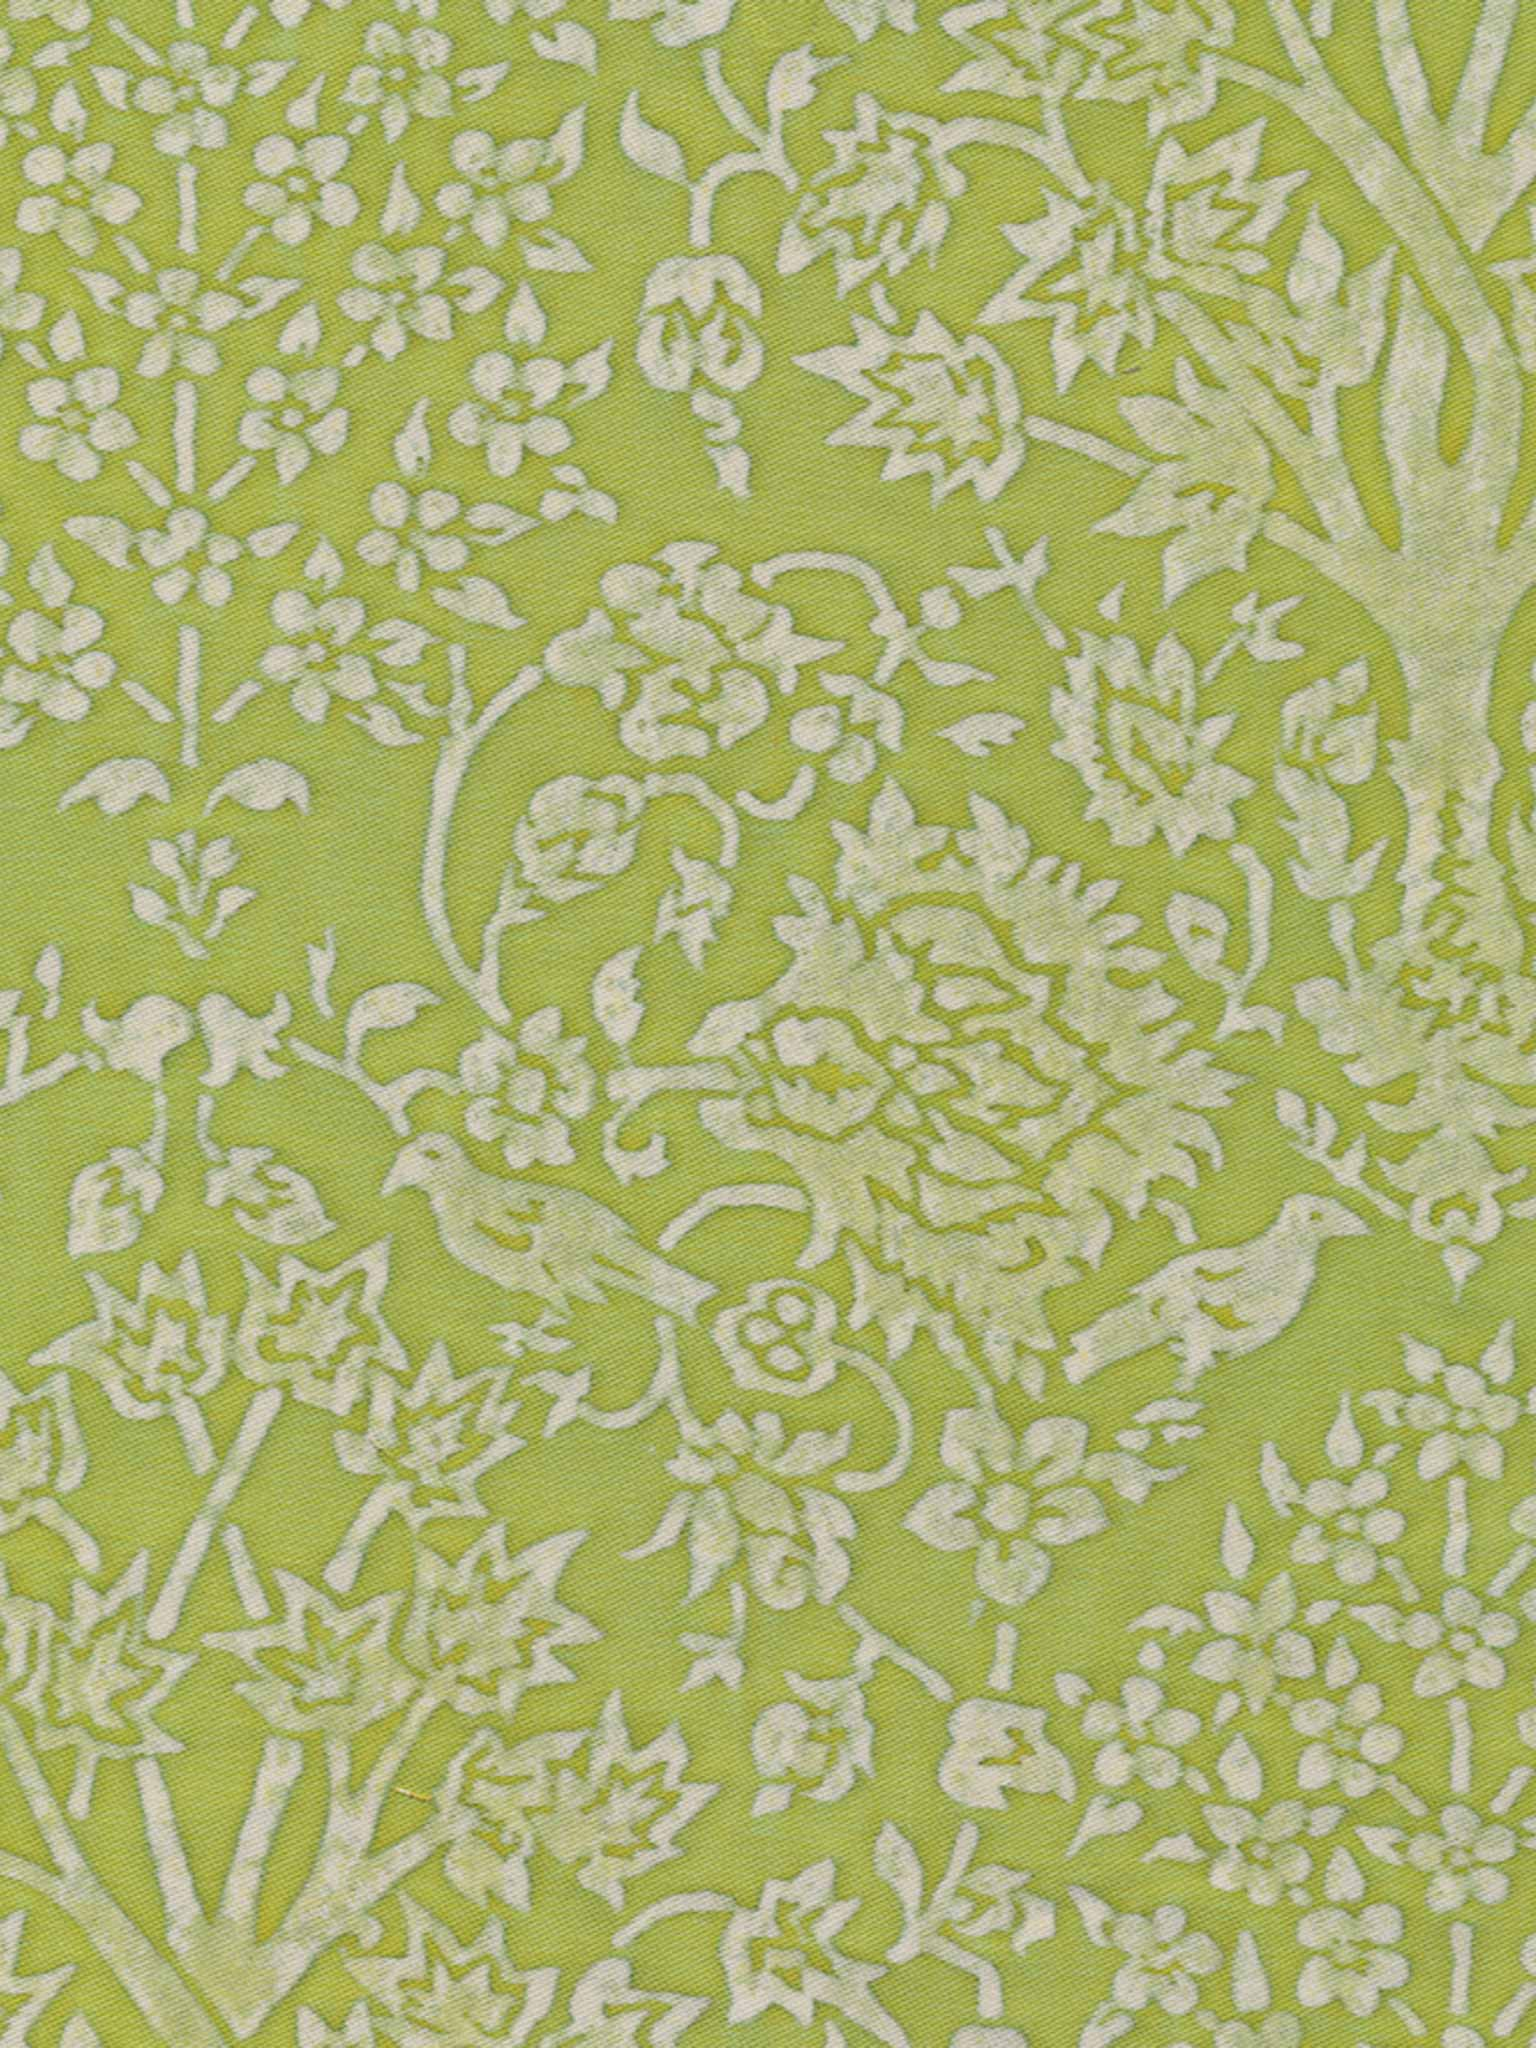 Alberelli in apple green white fortuny 5427 alberelli in apple green white fortuny printed cottons sisterspd